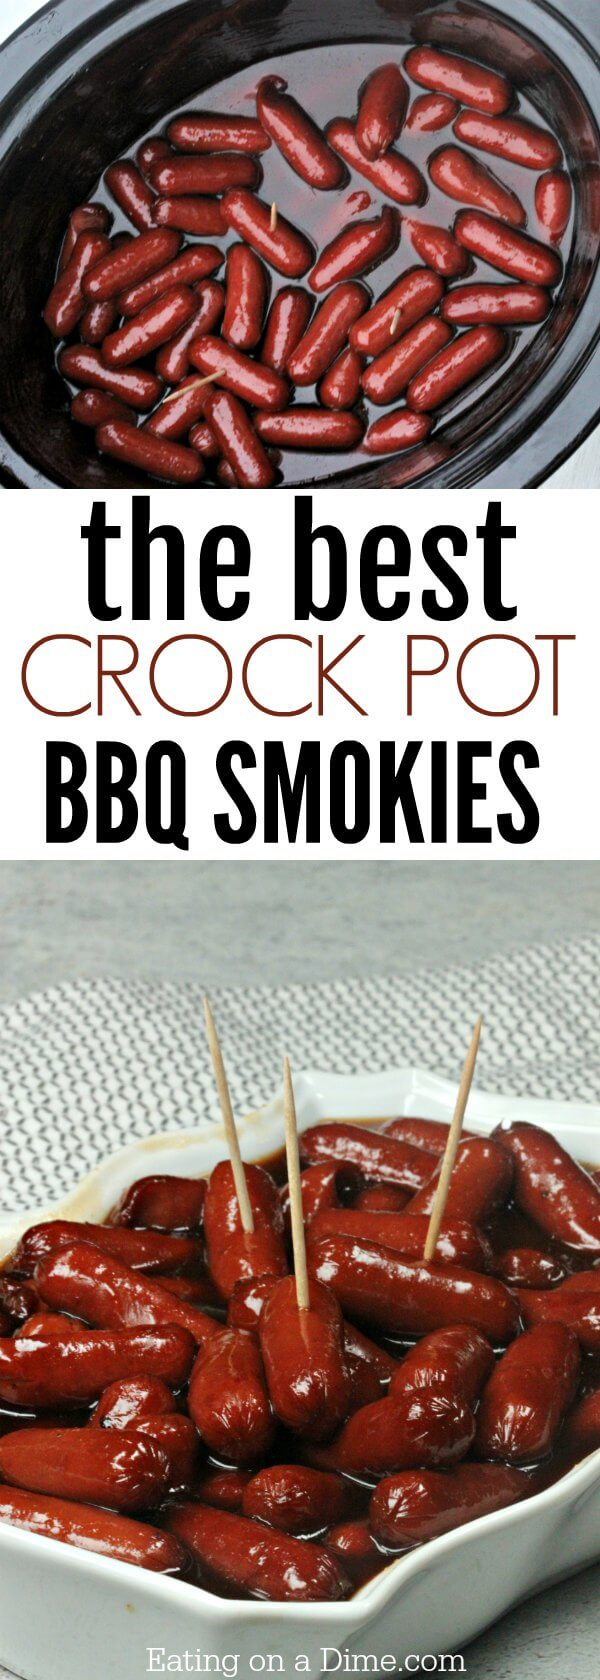 Crockpot Bbq Little Smokies Only 3 Simple Ingredients